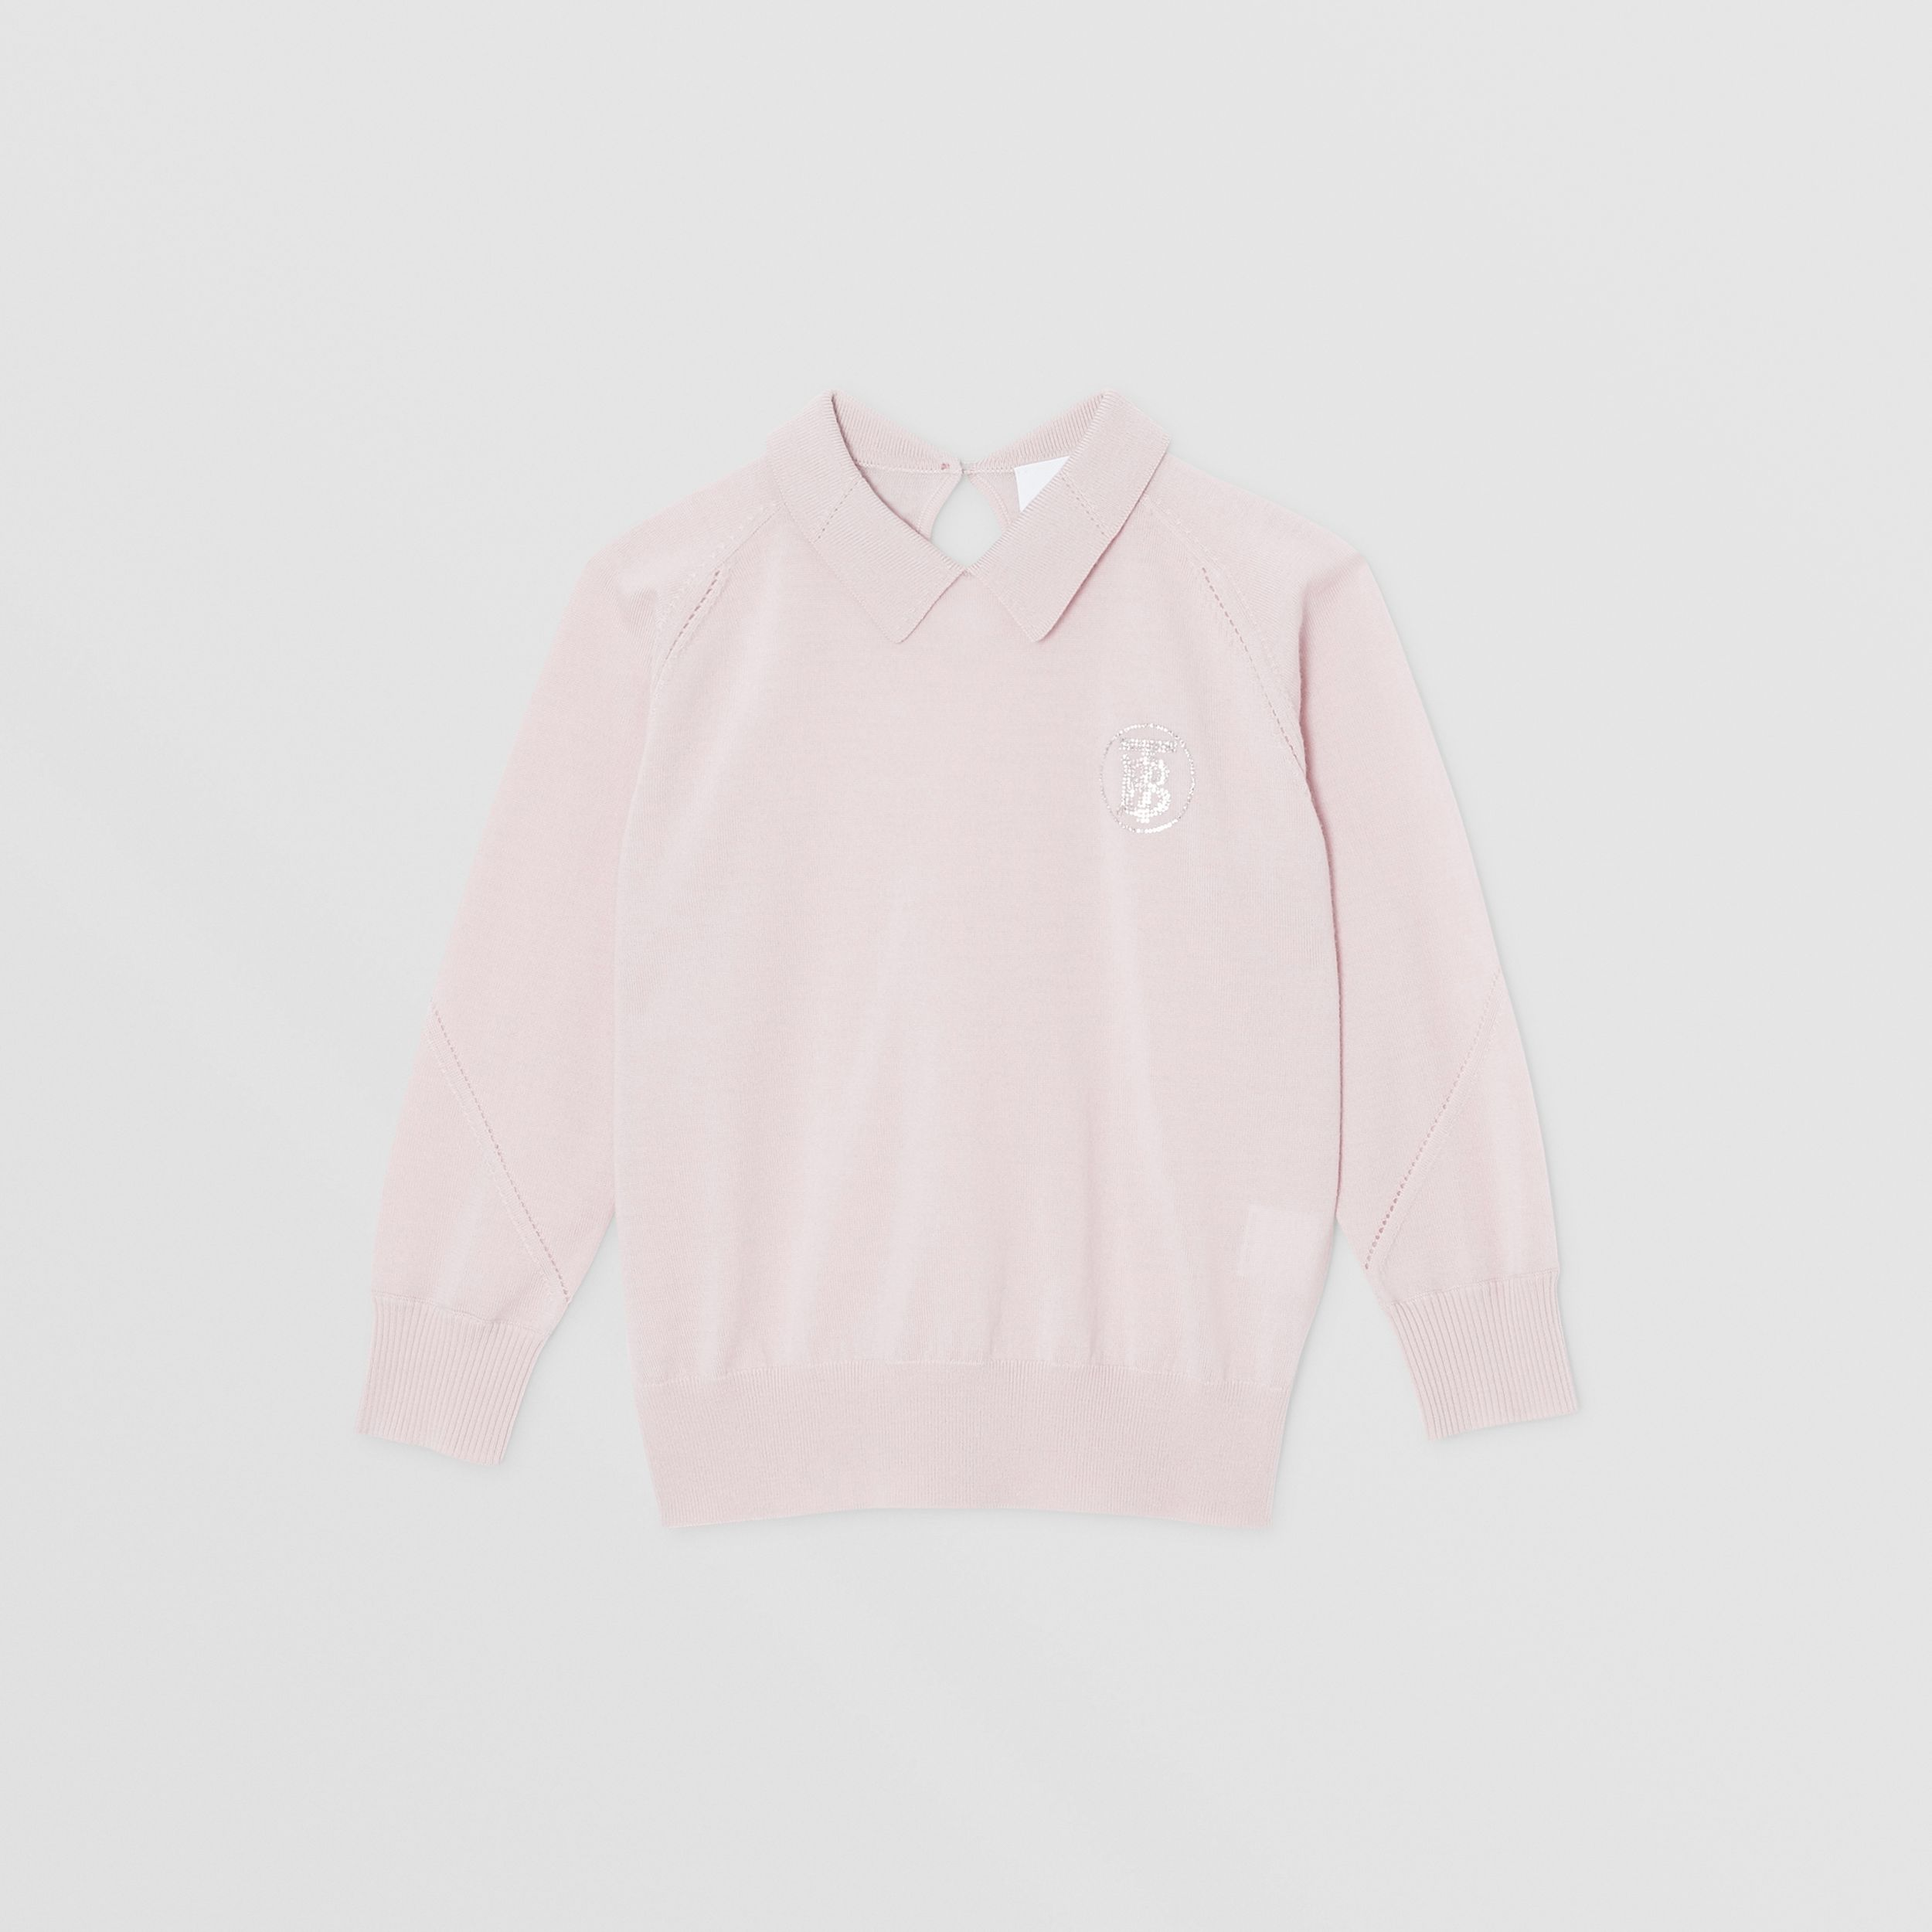 Crystal Monogram Motif Merino Wool Sweater in Light Pink | Burberry - 1